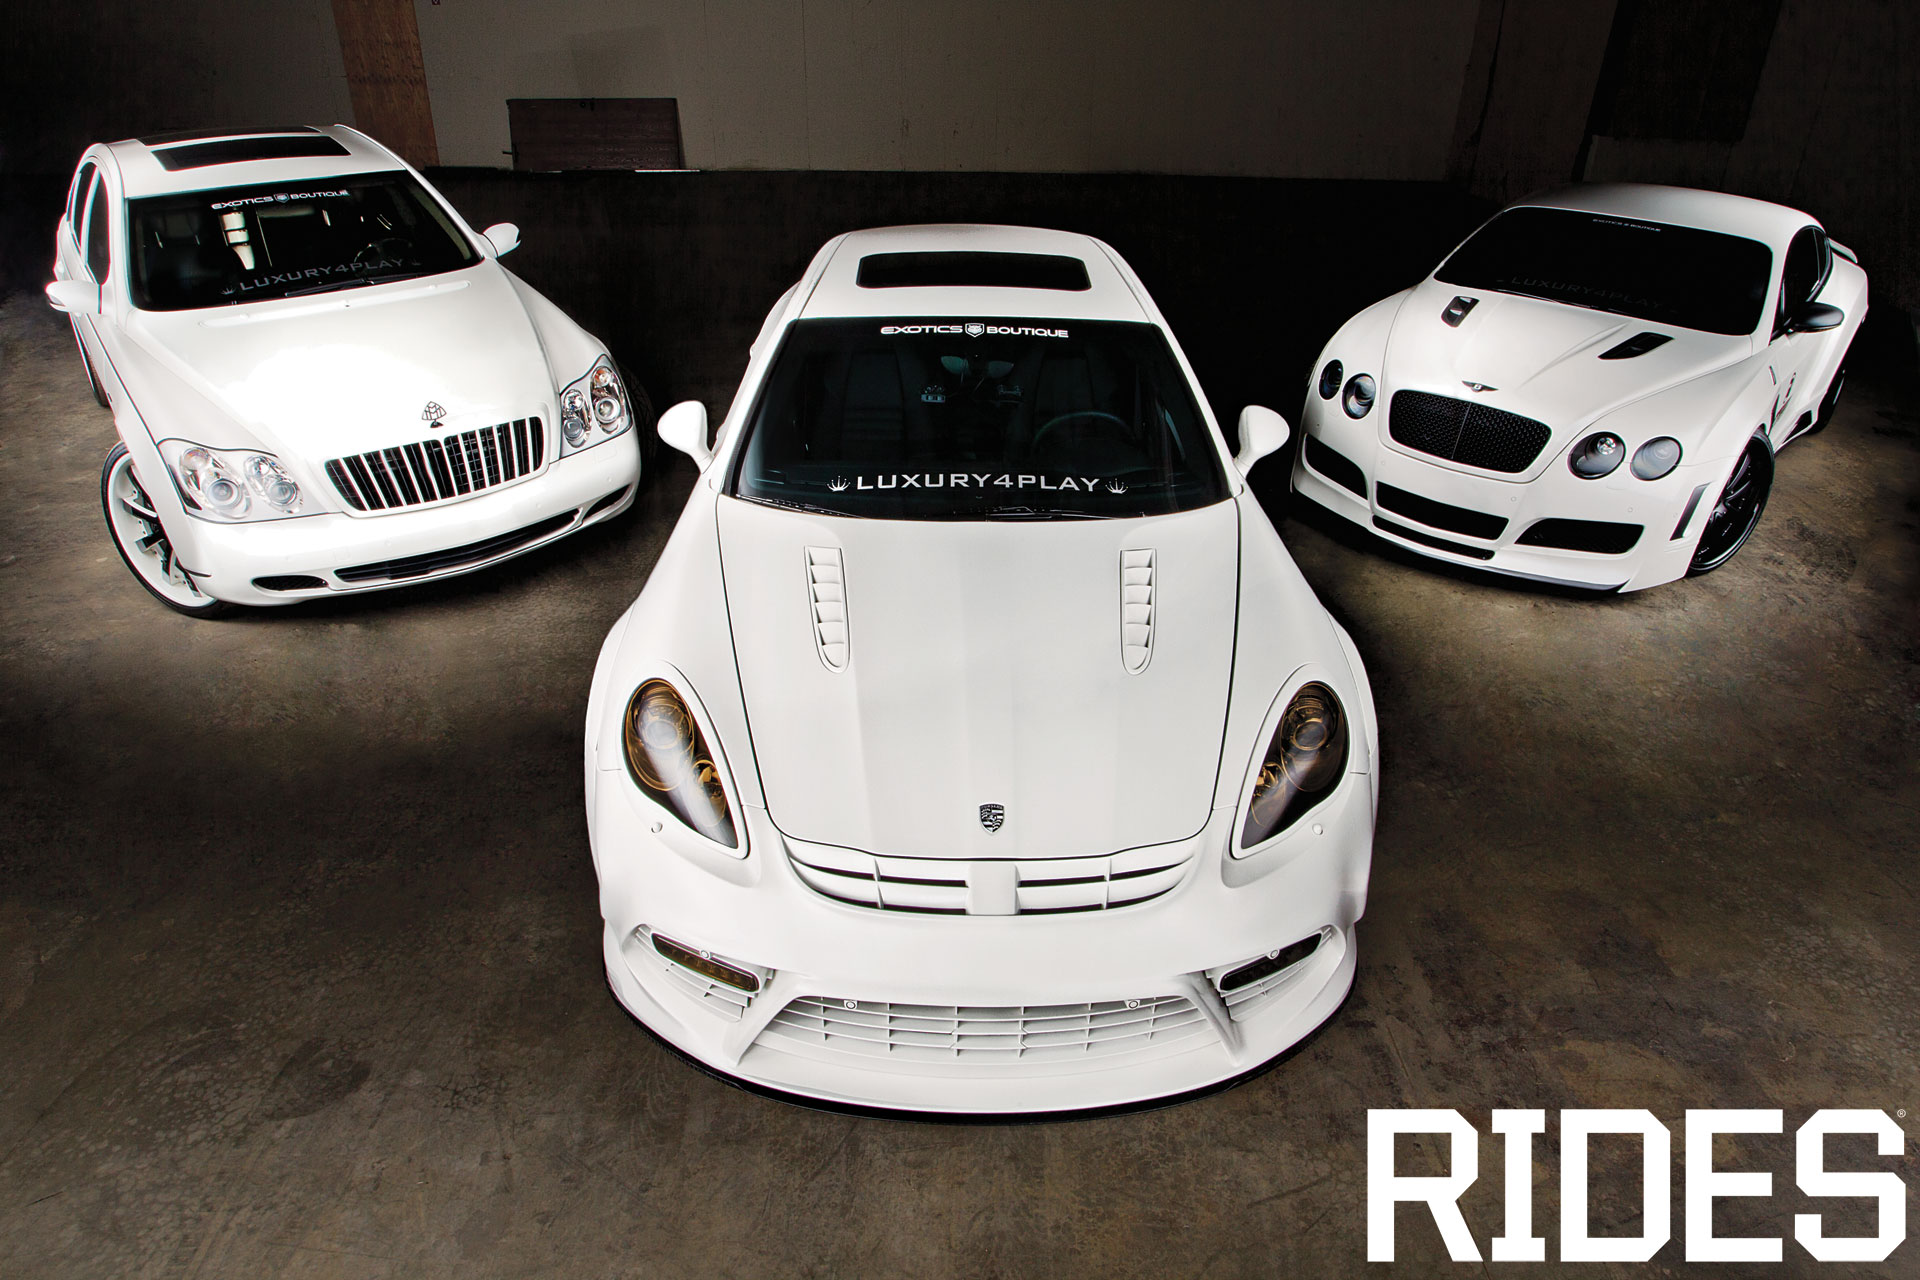 rides cars platinum luxury4play trio porsche panamera matte white bentley continental gt maybach 57